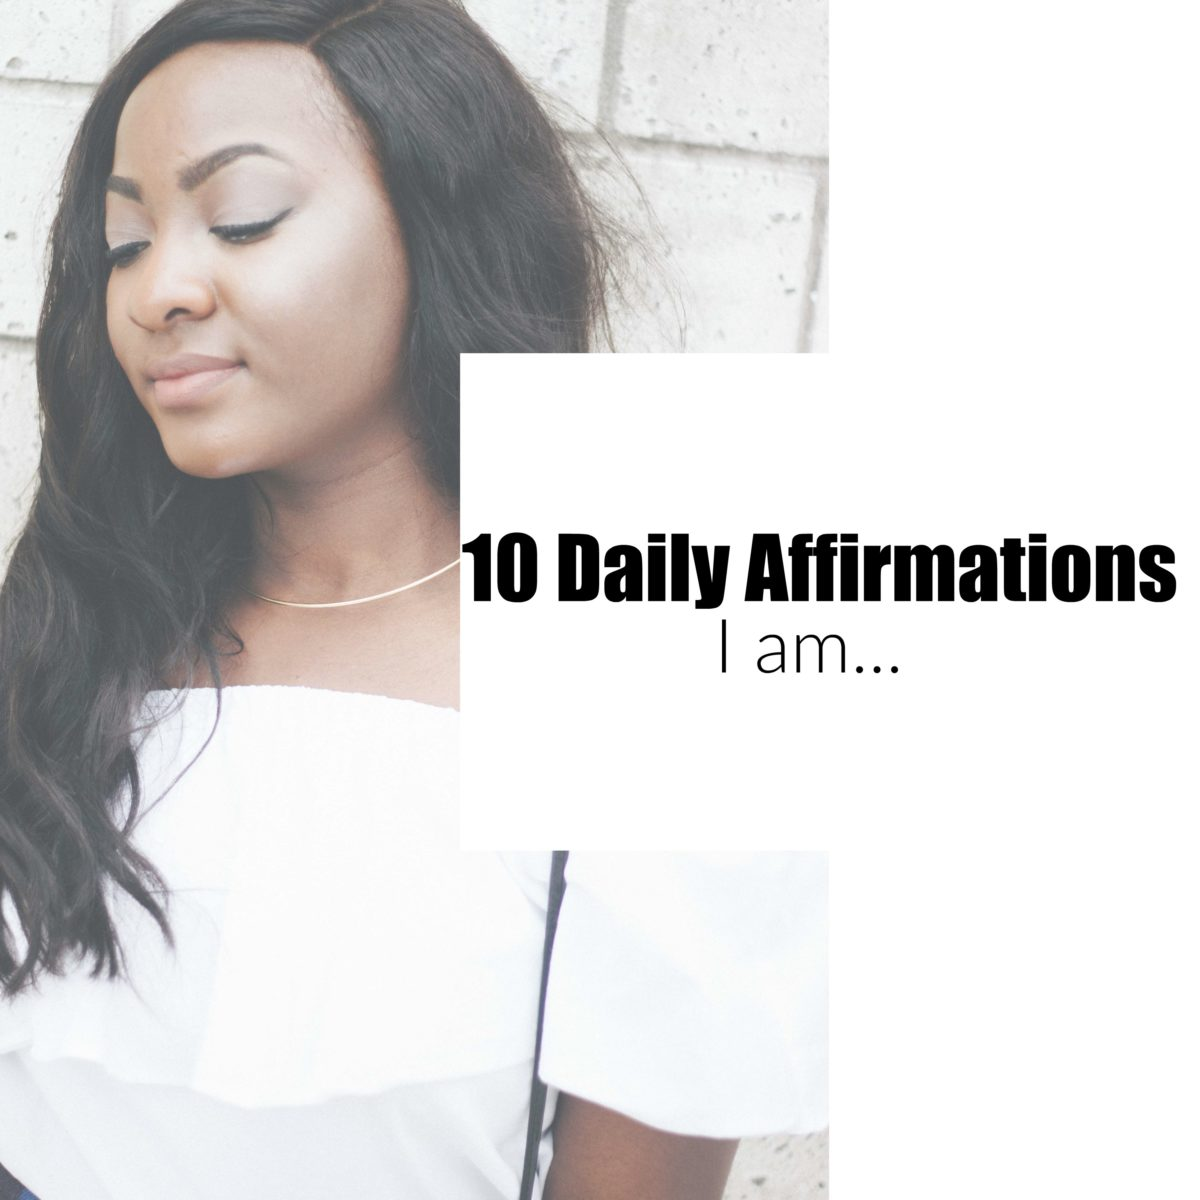 10 Daily Affirmations